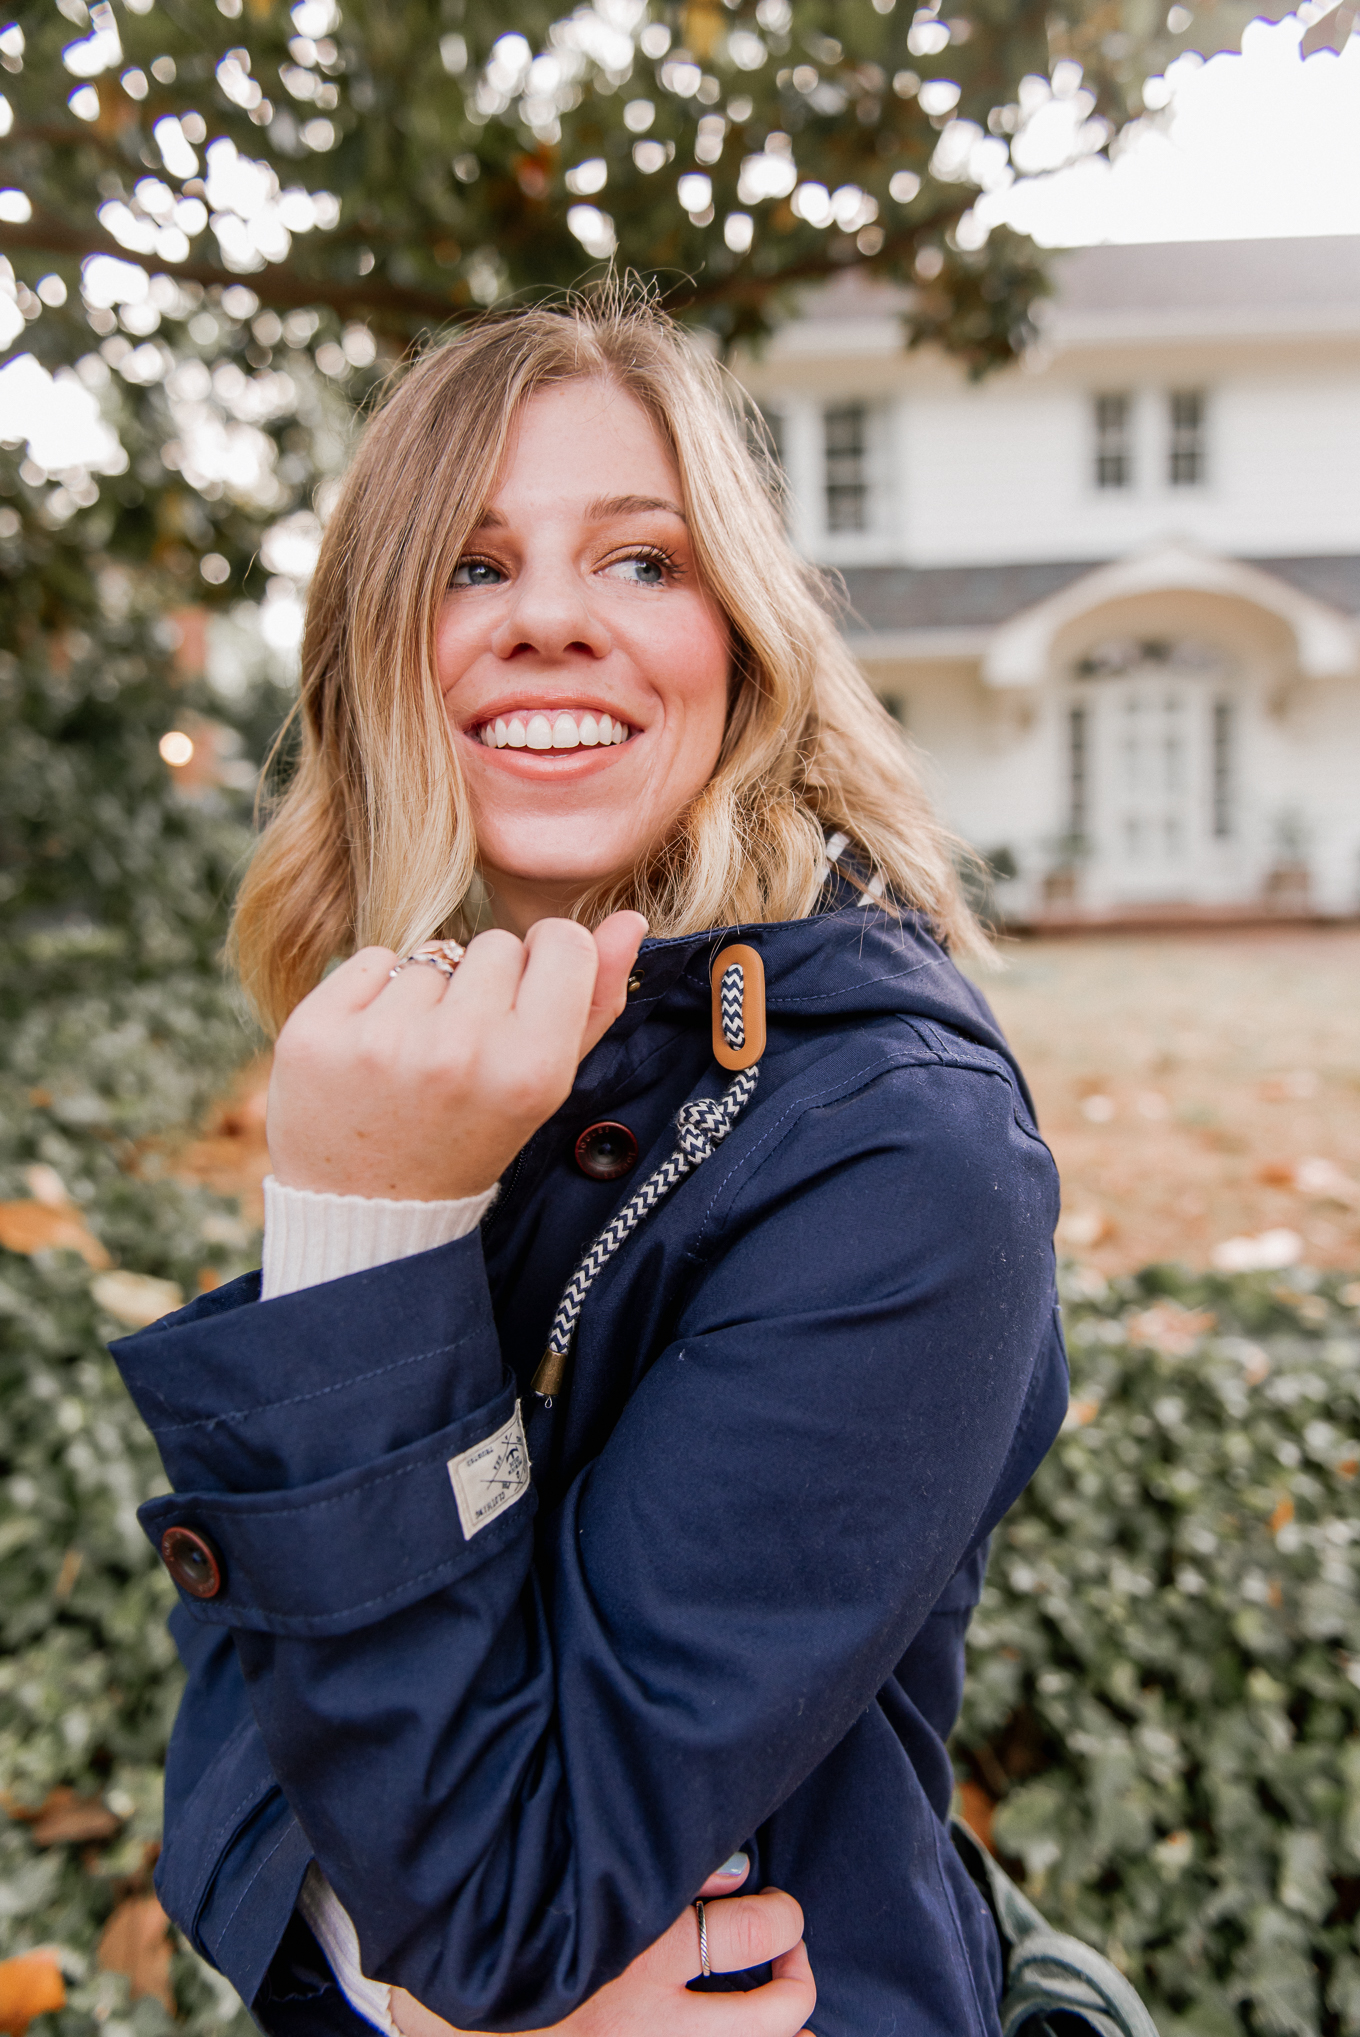 Fall Rain Jacket | The Perfect Medium Weight Rain Jacket, Preppy Navy Jacket | Louella Reese